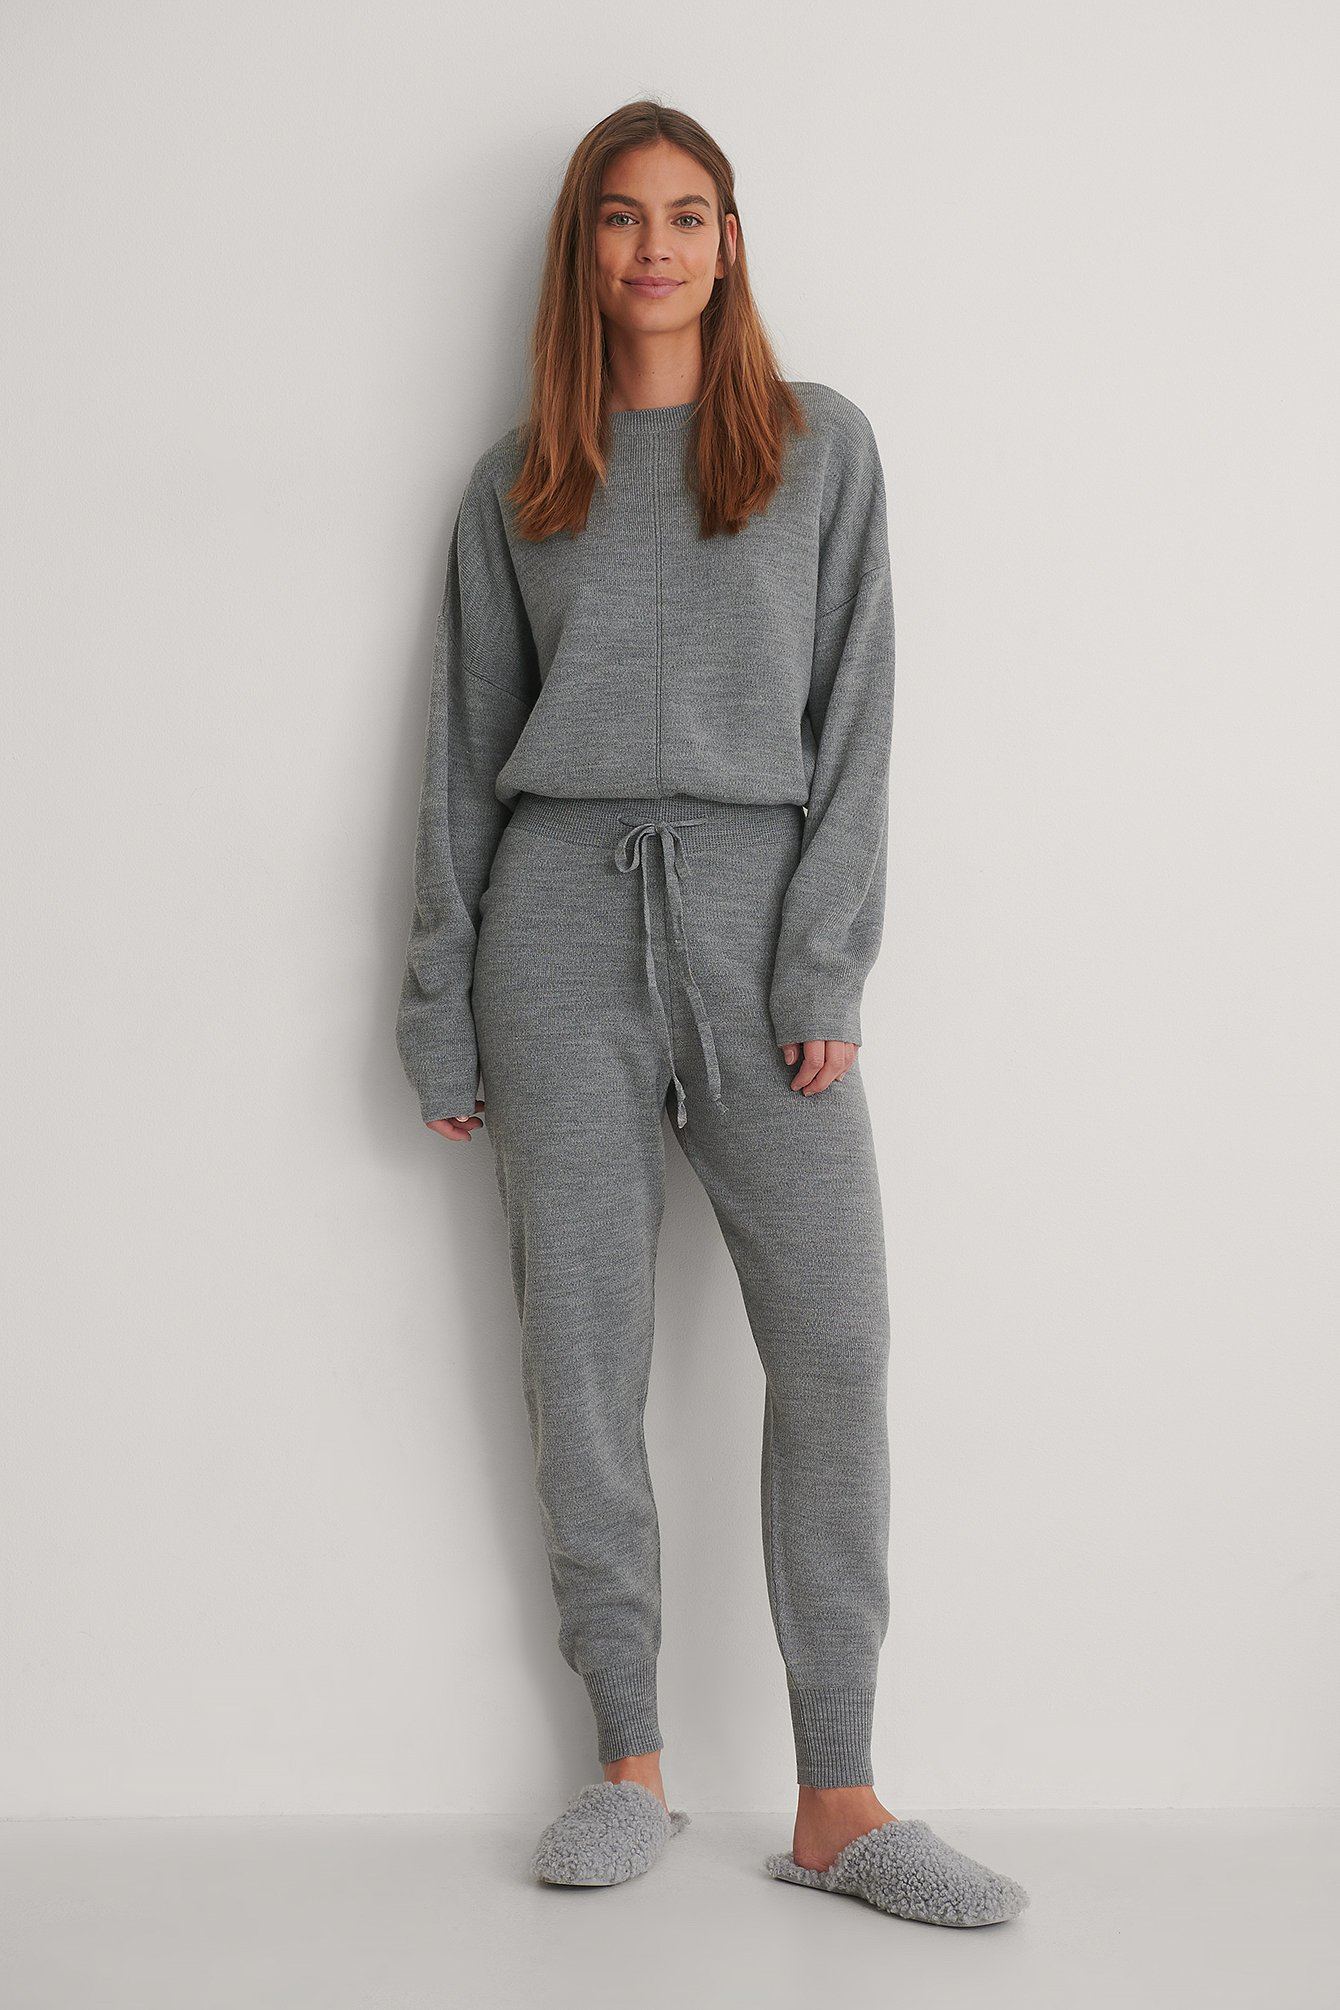 Grey Melange Knitted Trousers